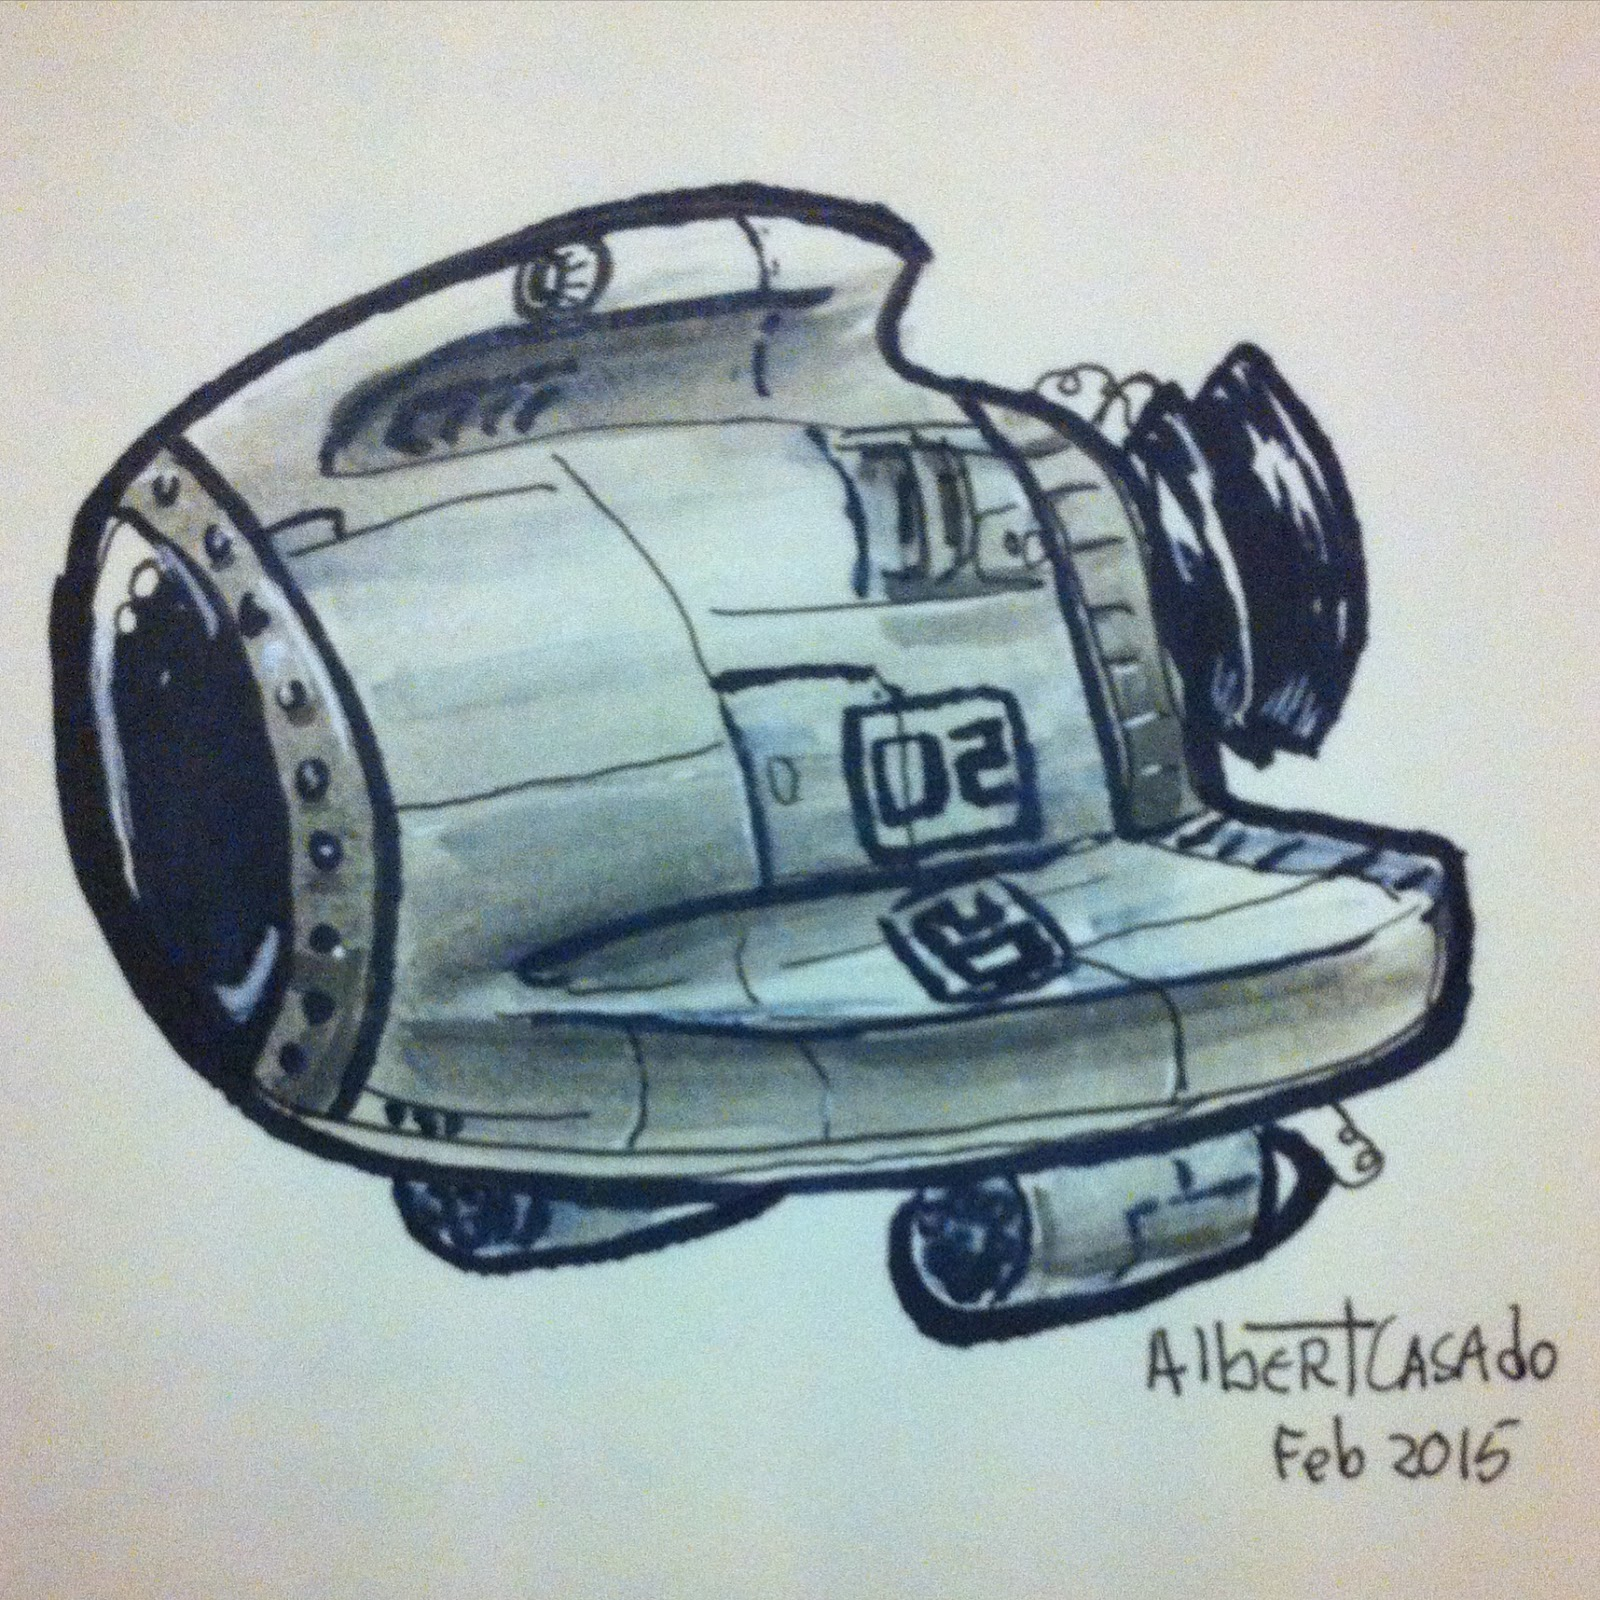 02 - Spaceship - (100mechDrawings) - Albert Casado